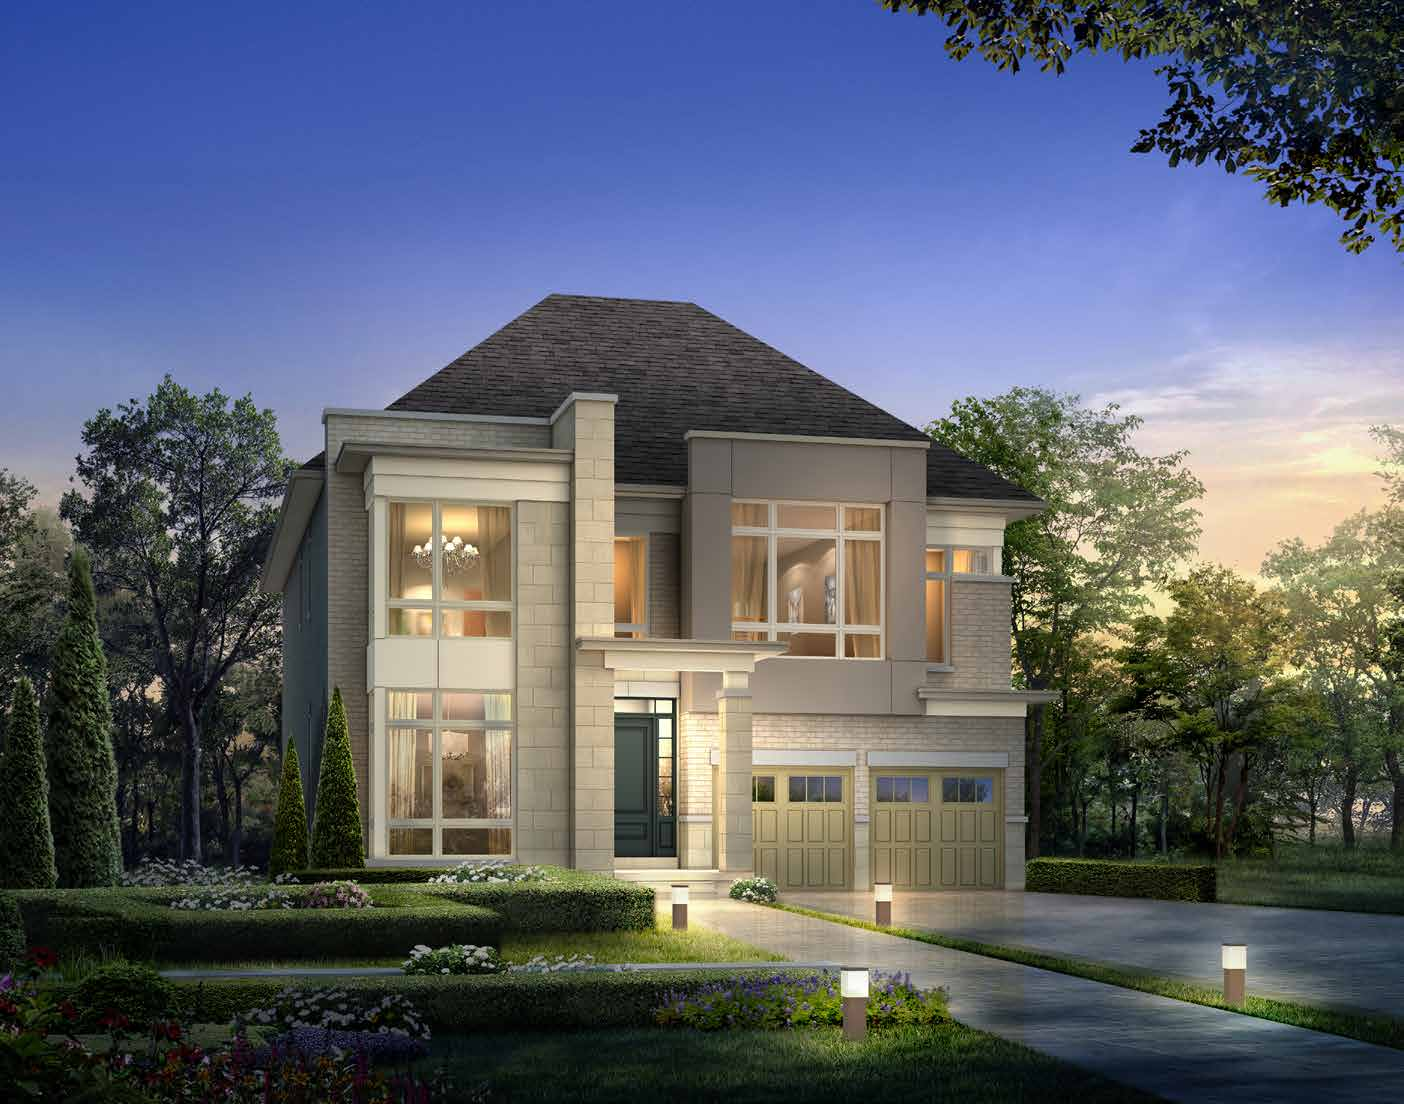 ELEVATION C 3707 sq. ft.